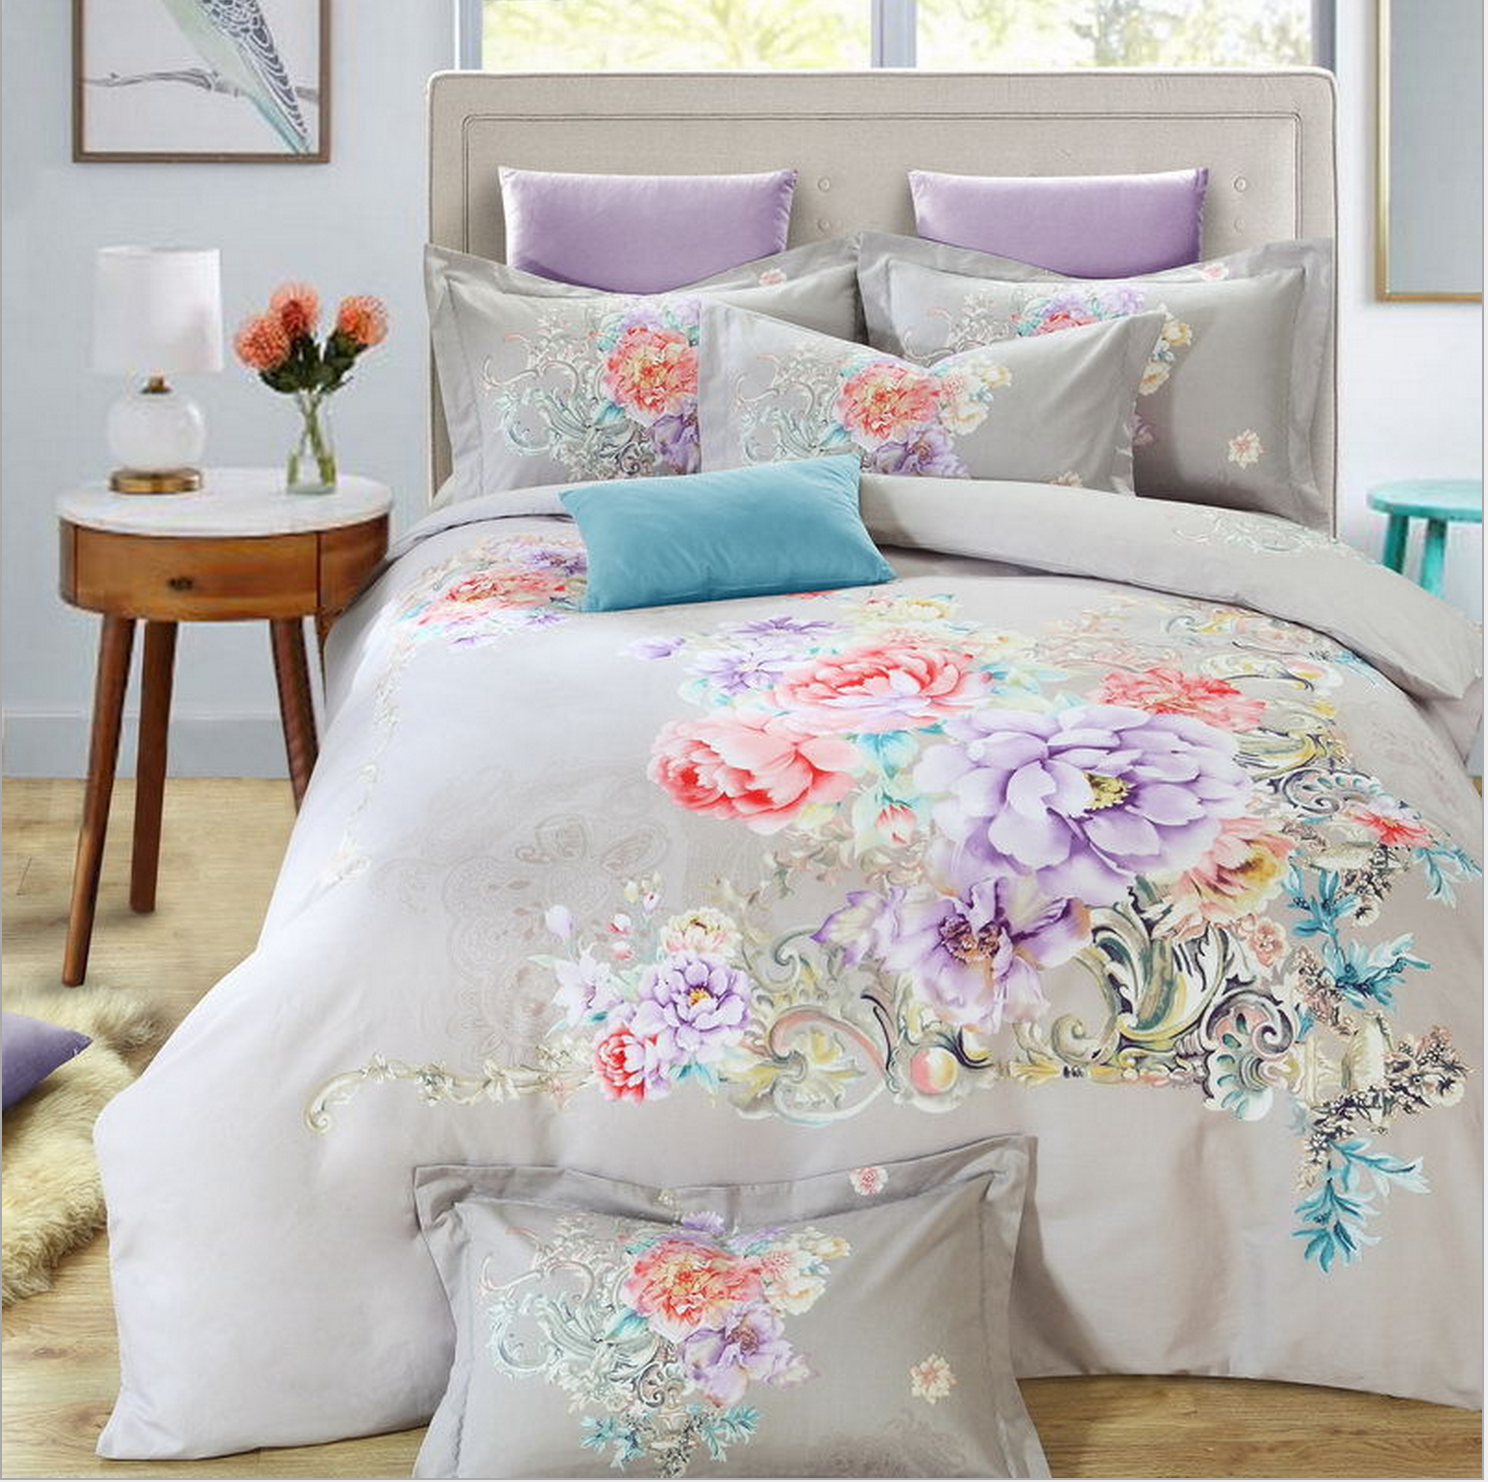 Newly wed or not, this eye-catching bedding set will light ...